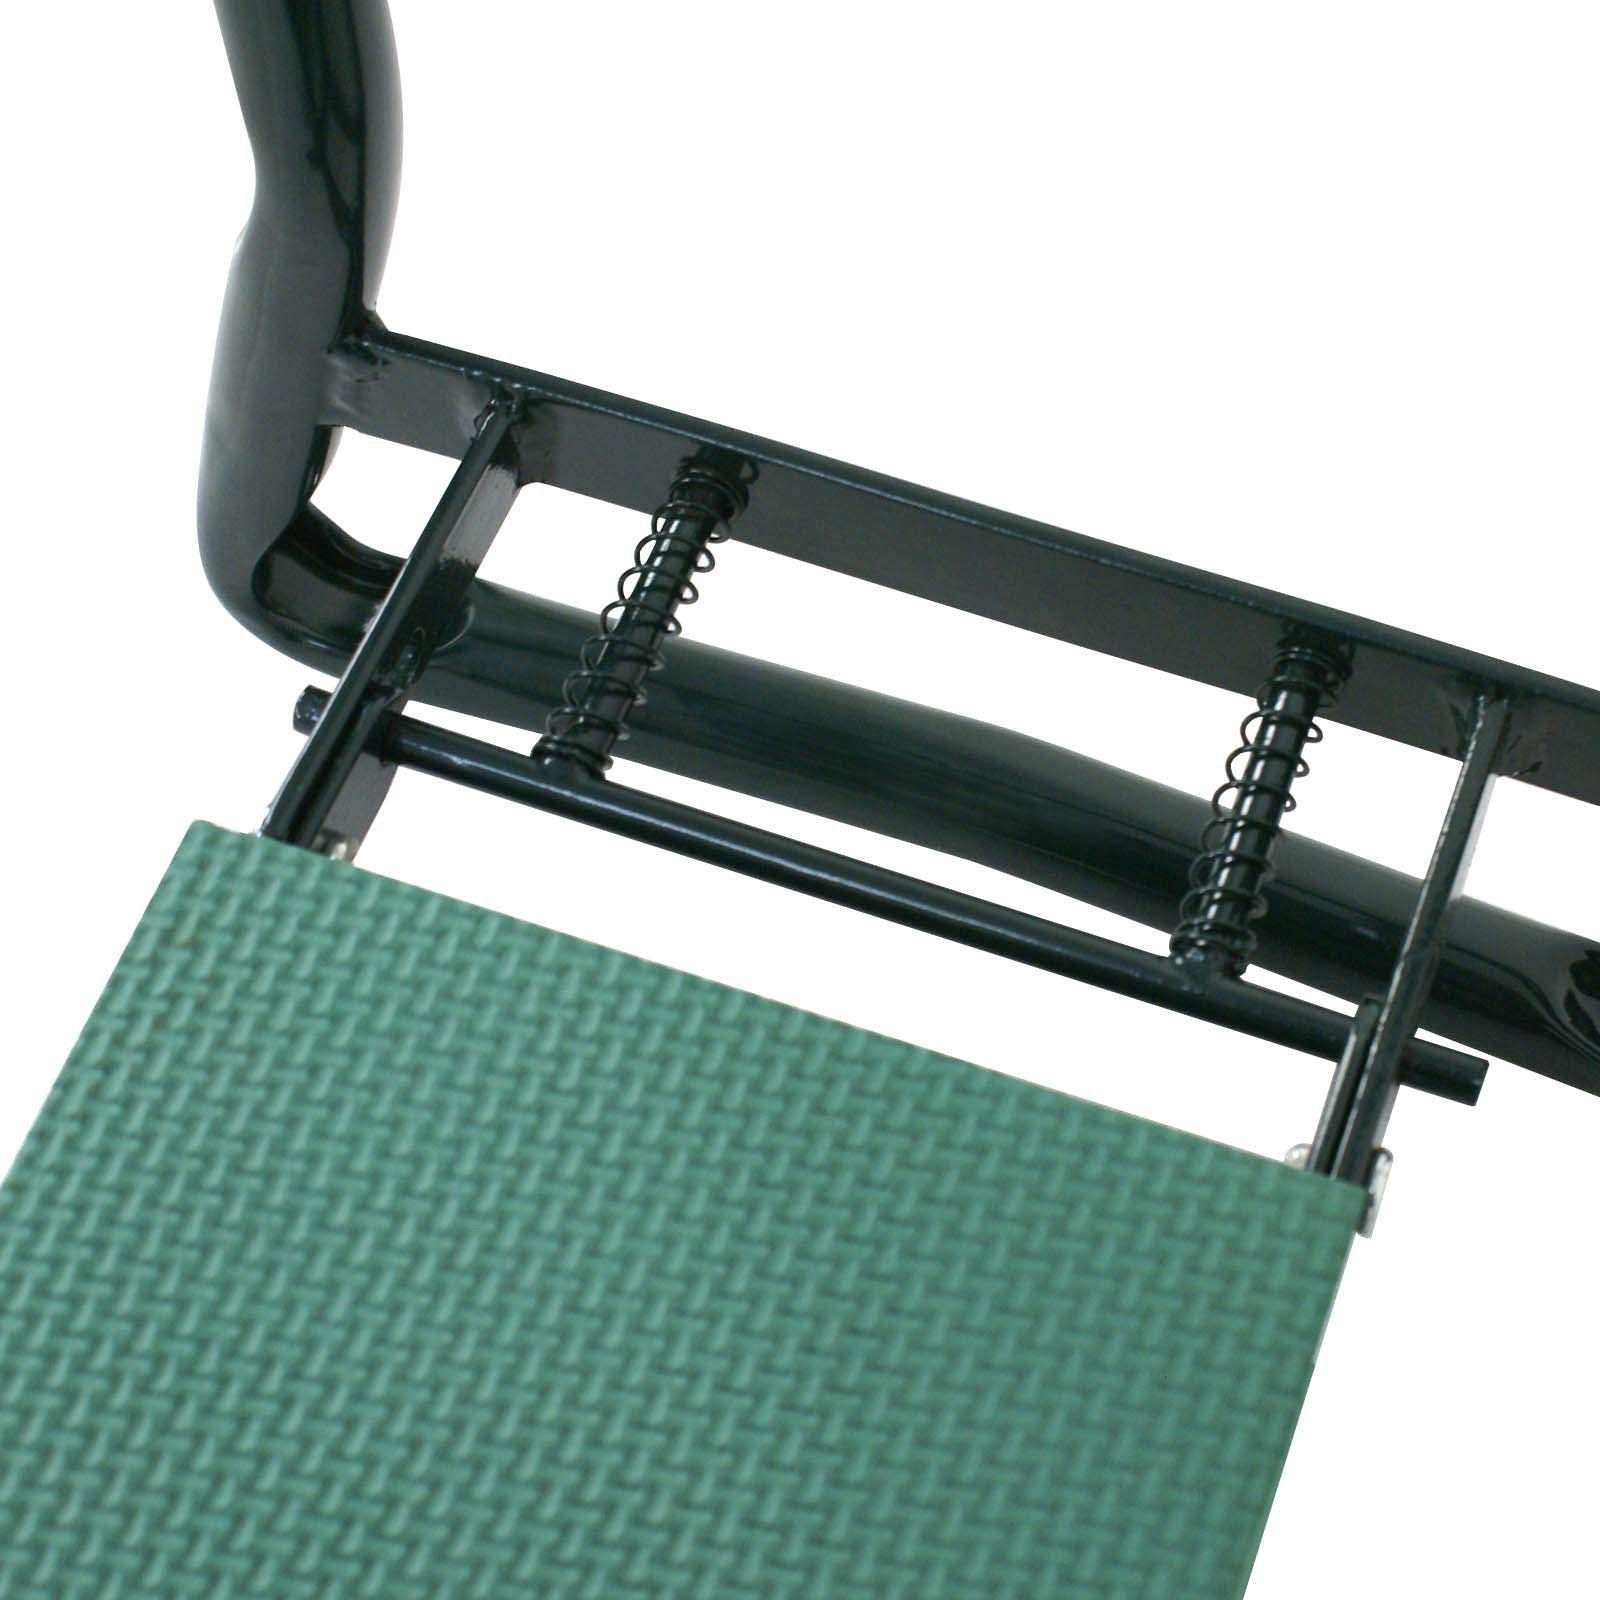 (GG) Garden Kneeler Seat w/EVA Folding Portable Bench Kneeling Pad and Tool Pouch New by Good Grannies by (GG) (Image #4)